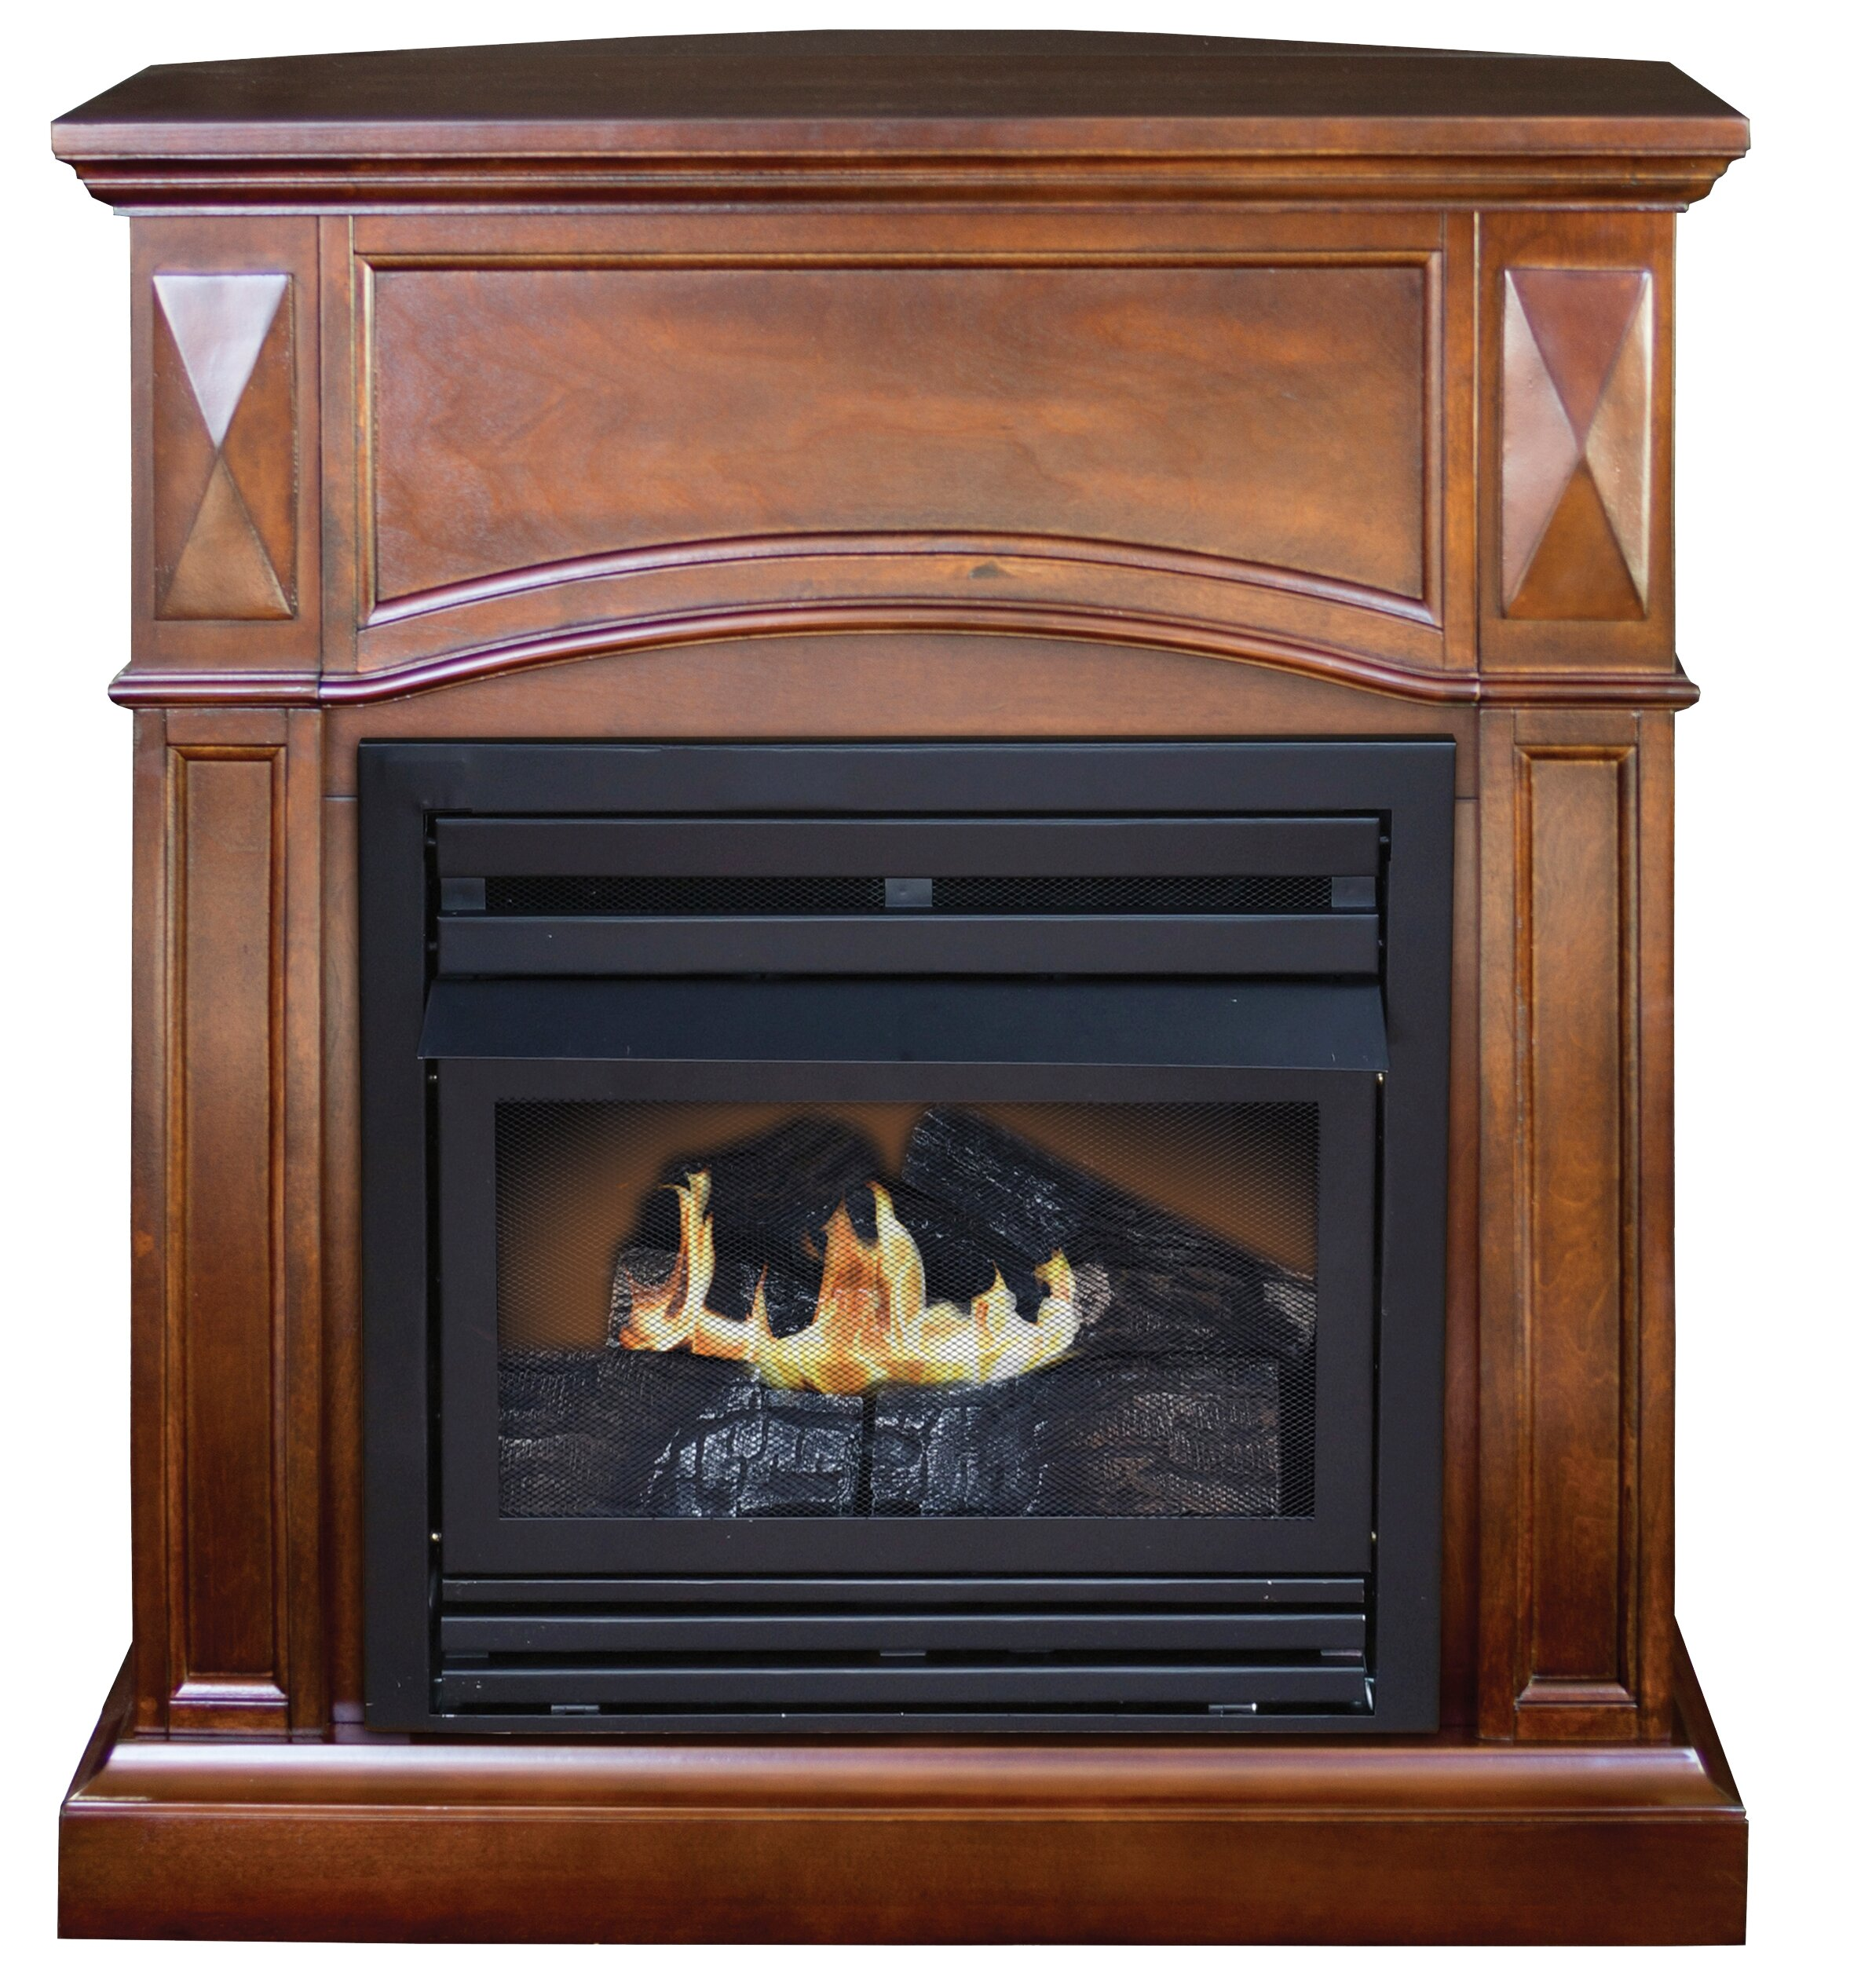 free pleasant tools ventless shop from northern hearth ntesearch btu vent fireplace tool natural gas equipment